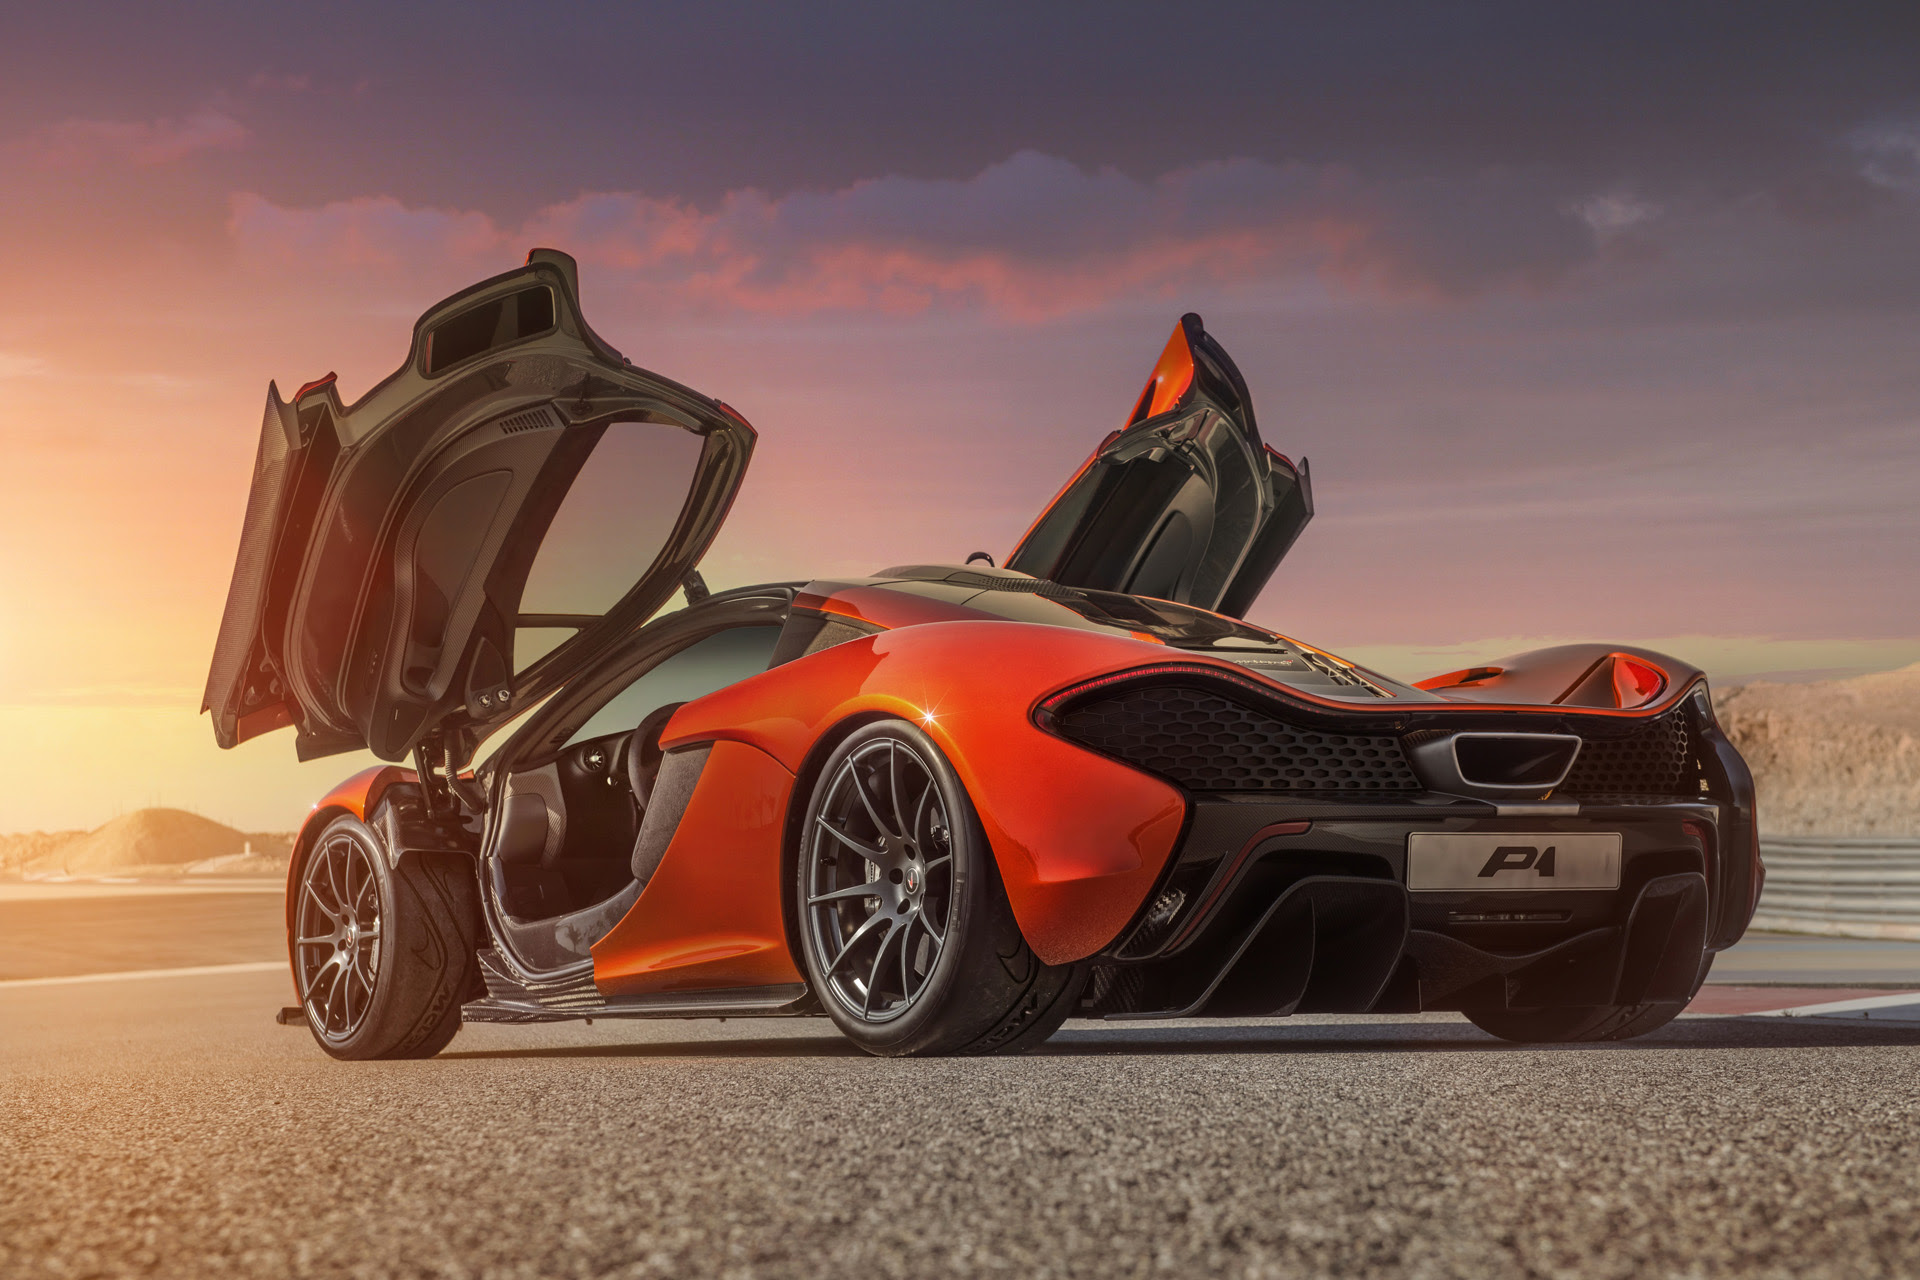 New McLaren P1 High Res Images Released  ForceGT.com